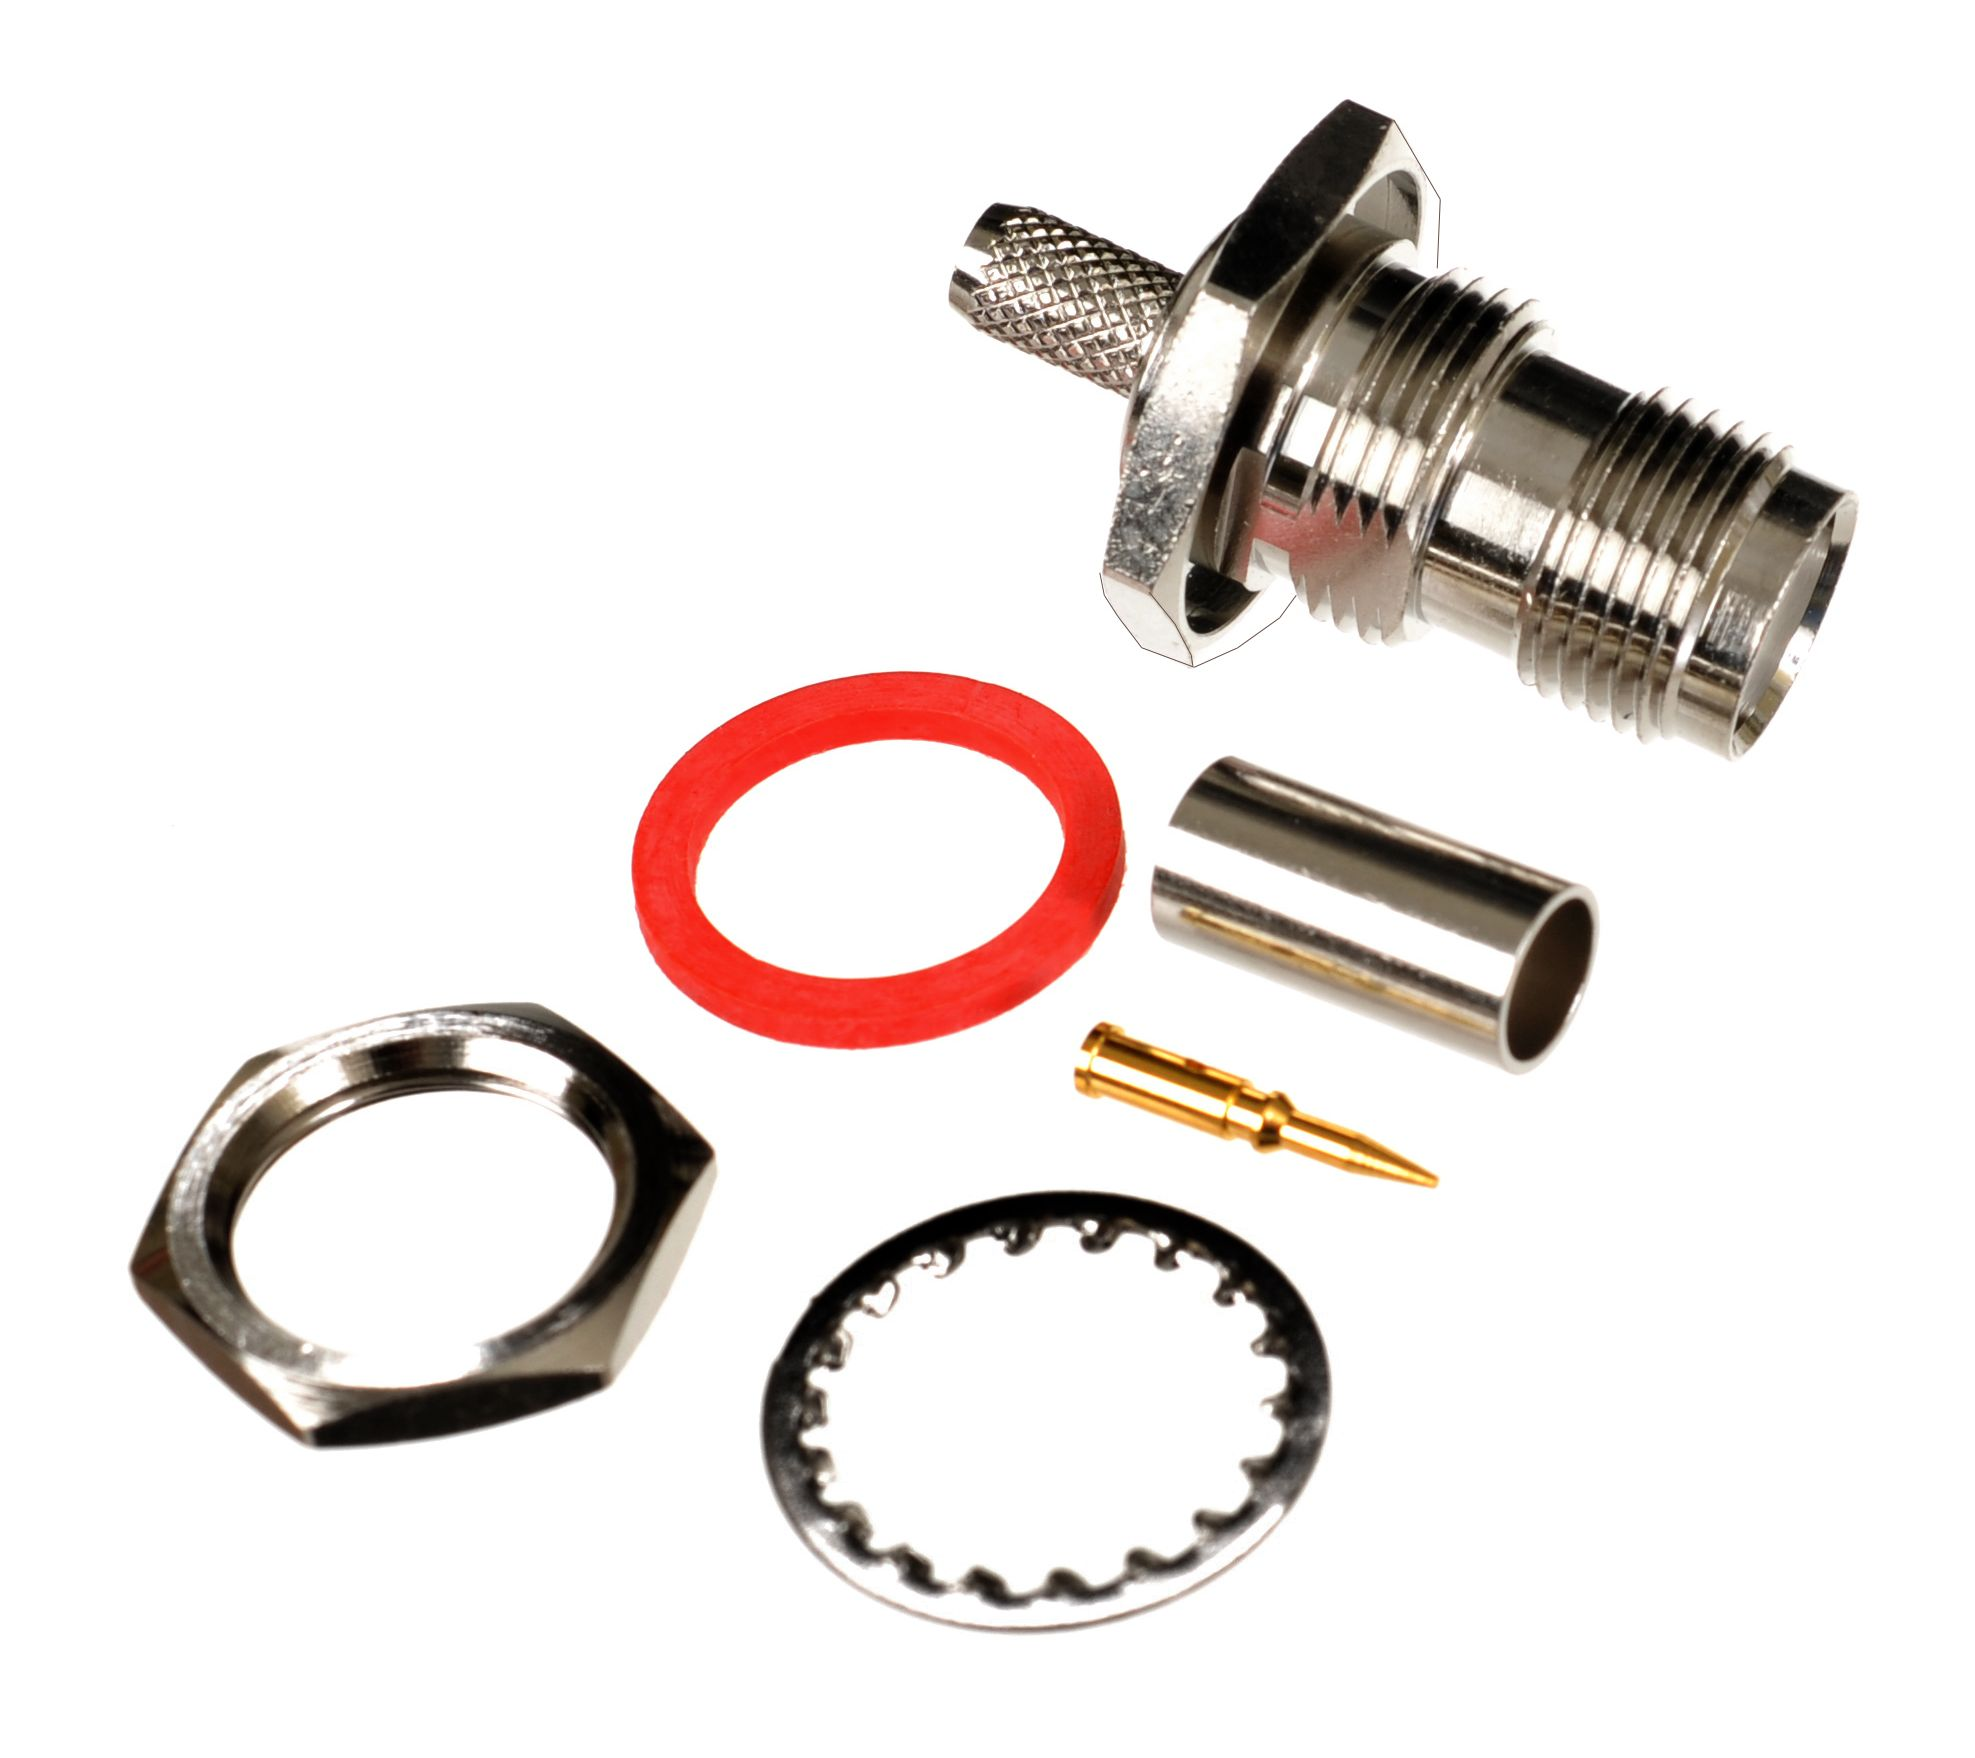 RP-TNC jack-female bulkhead crimp connector for AIR802 CA195, Times Microwave LMR195, RG58 and similar sized coaxial cables